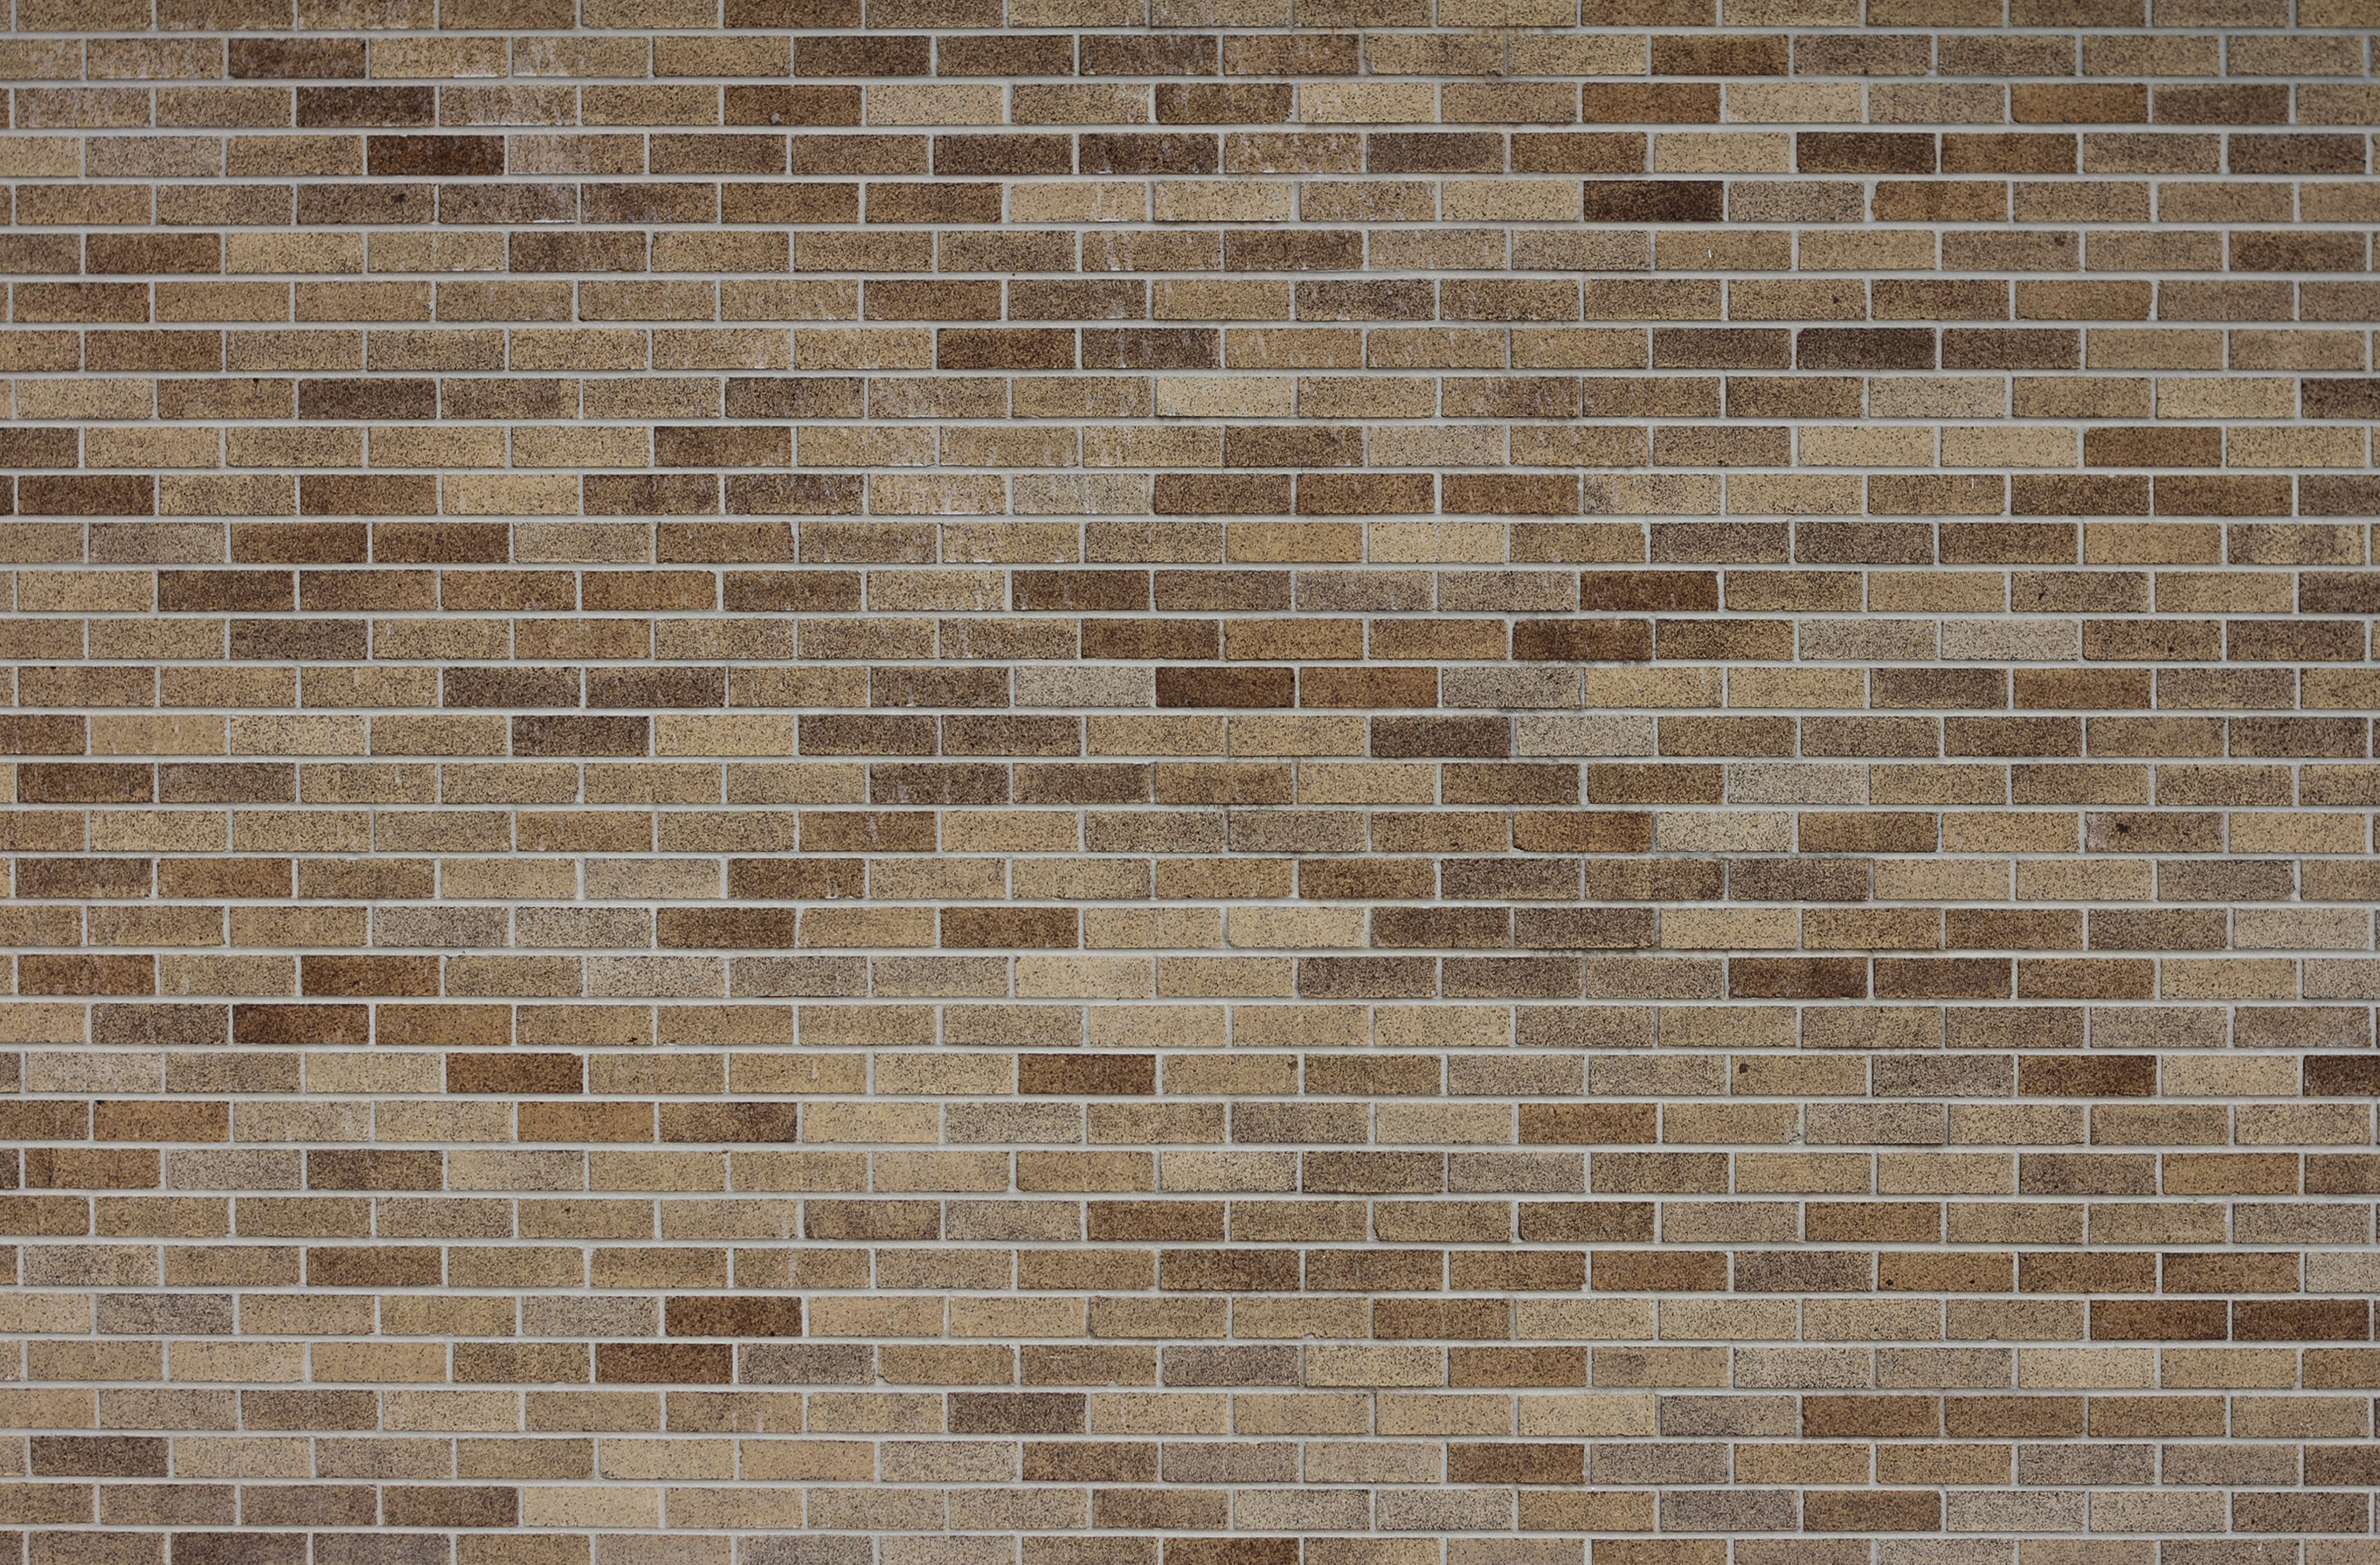 Tan and Brown Brick Texture Set - 14Textures